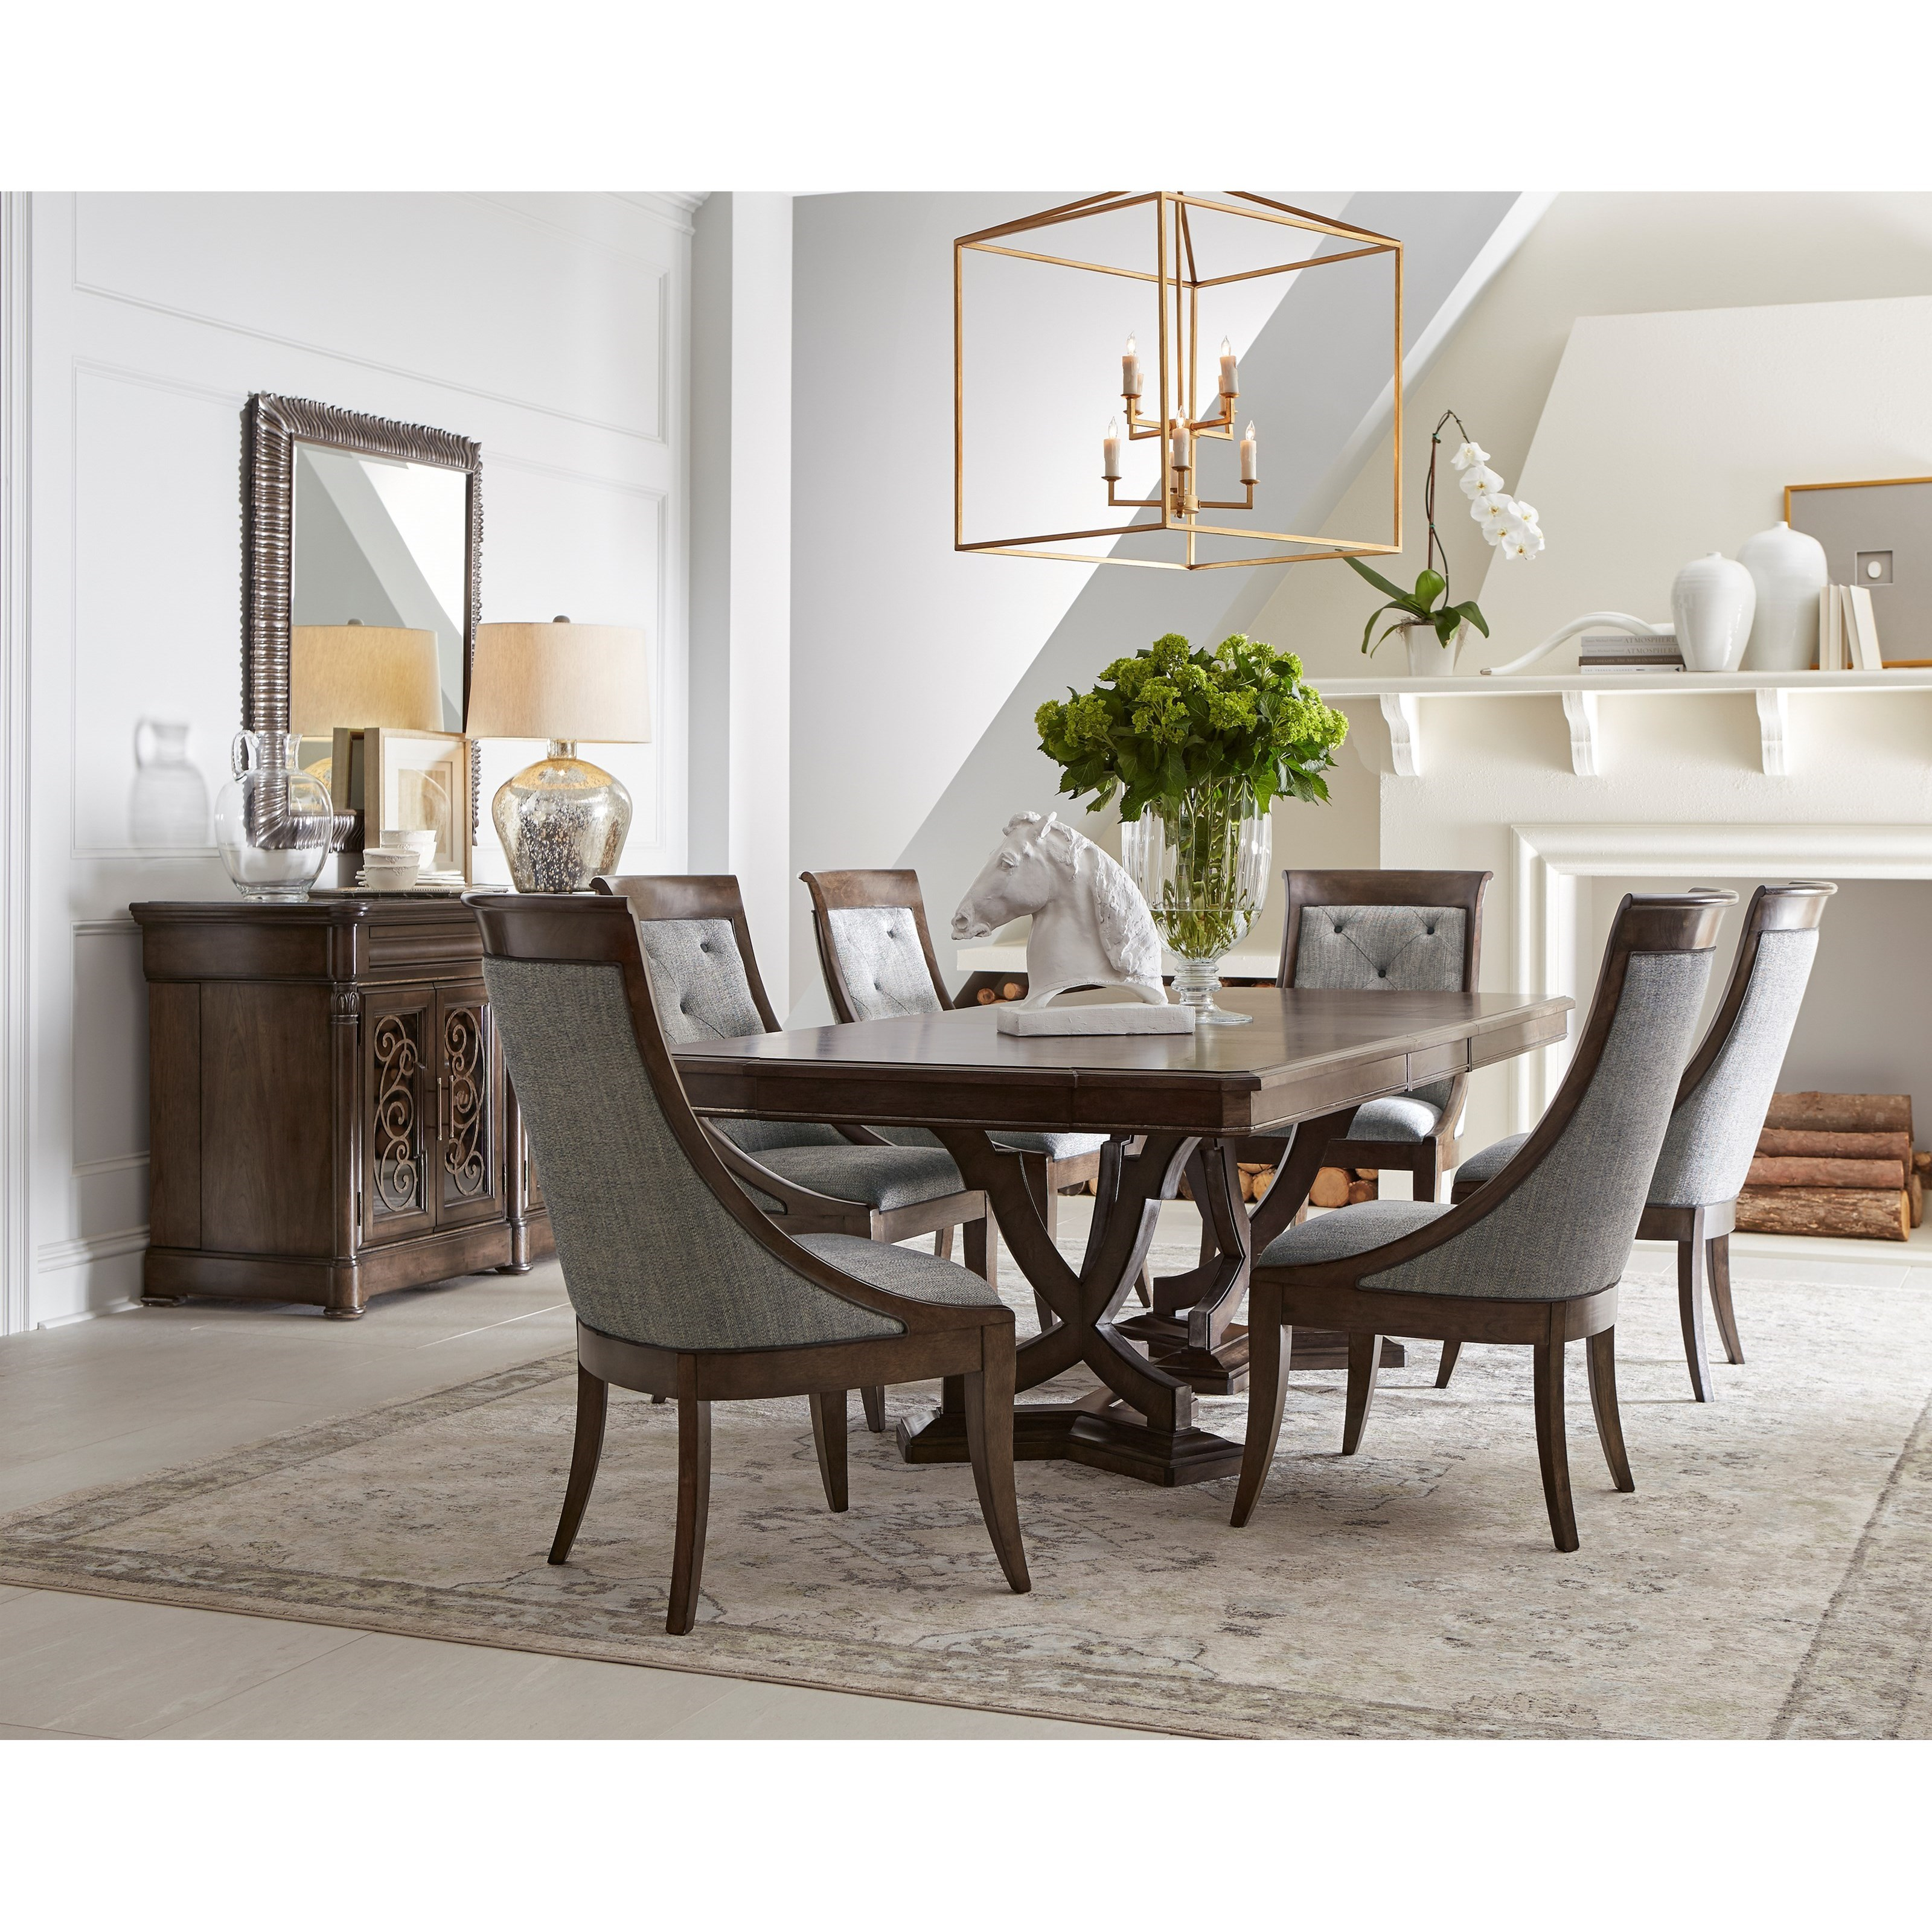 Landmark Formal Dining Group by A.R.T. Furniture Inc at Michael Alan Furniture & Design